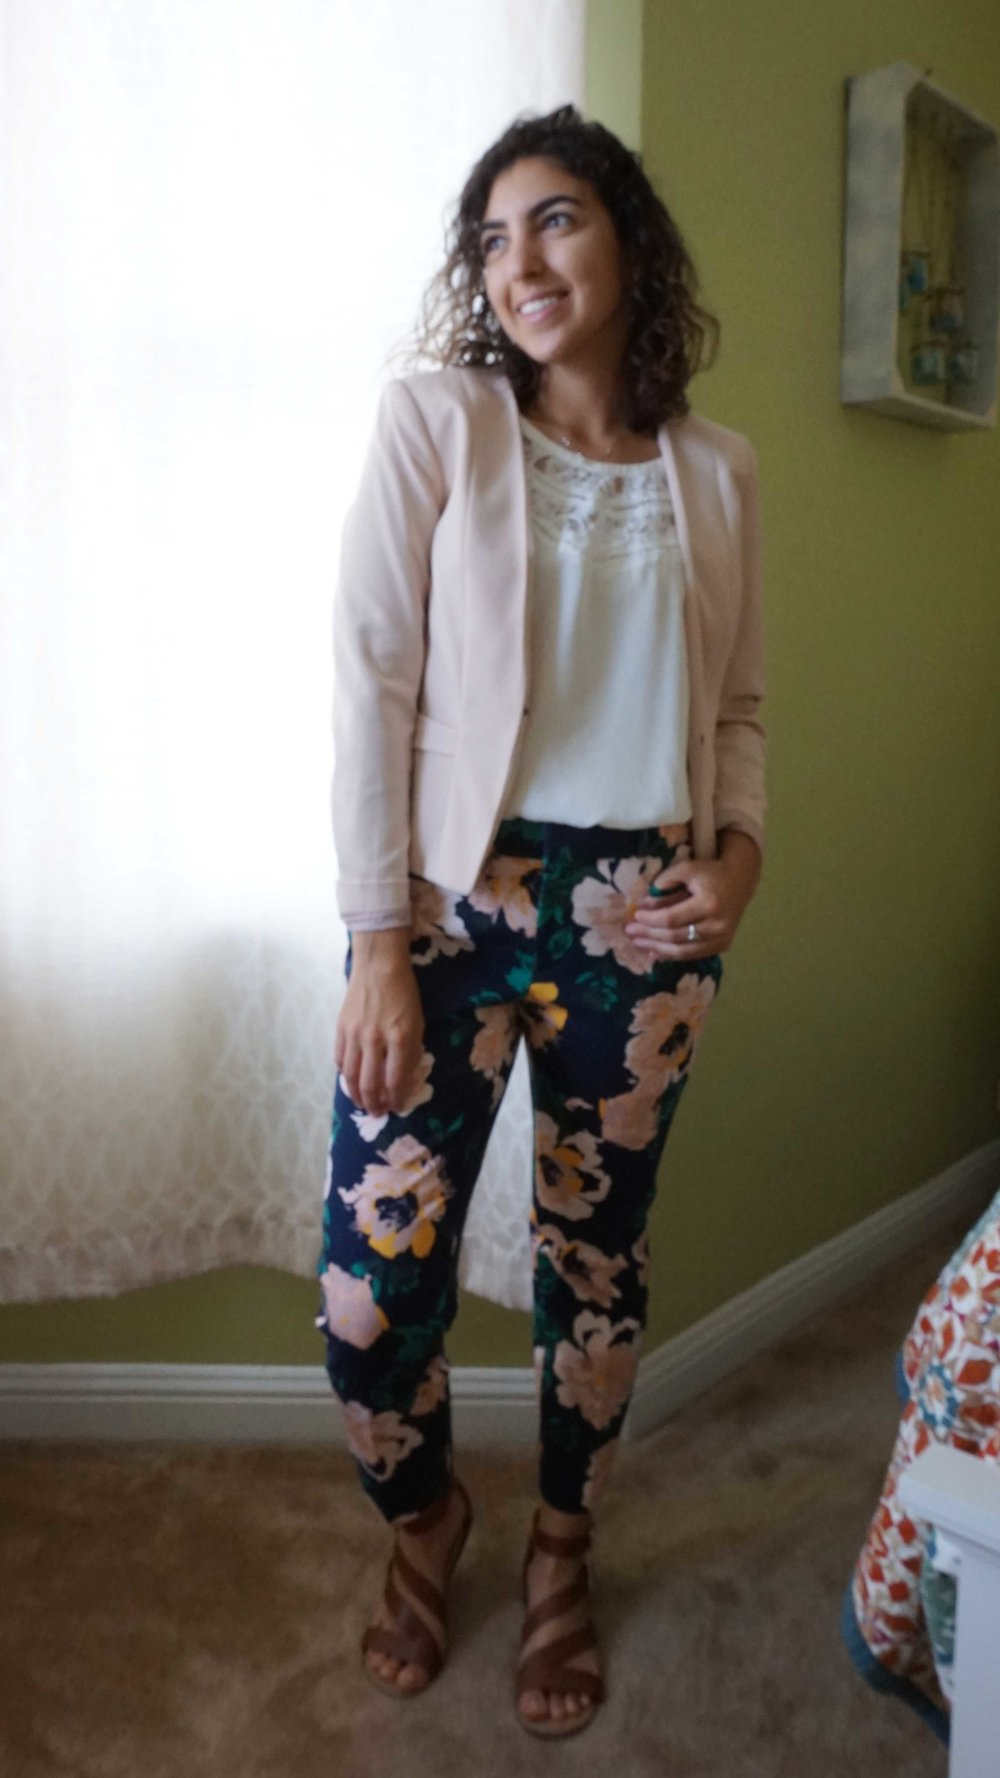 DAY 01 - I woke up in a really good mood on Day 1 and wanted the world to know it! Queue the fun floral pants. I picked these bad boys up during my latest trip to the Gilroy Outlets and have loved finding ways to style them. On this day, I opted for a white lace top and blush blazer. I felt like a floral b@da$$ in this outfit!